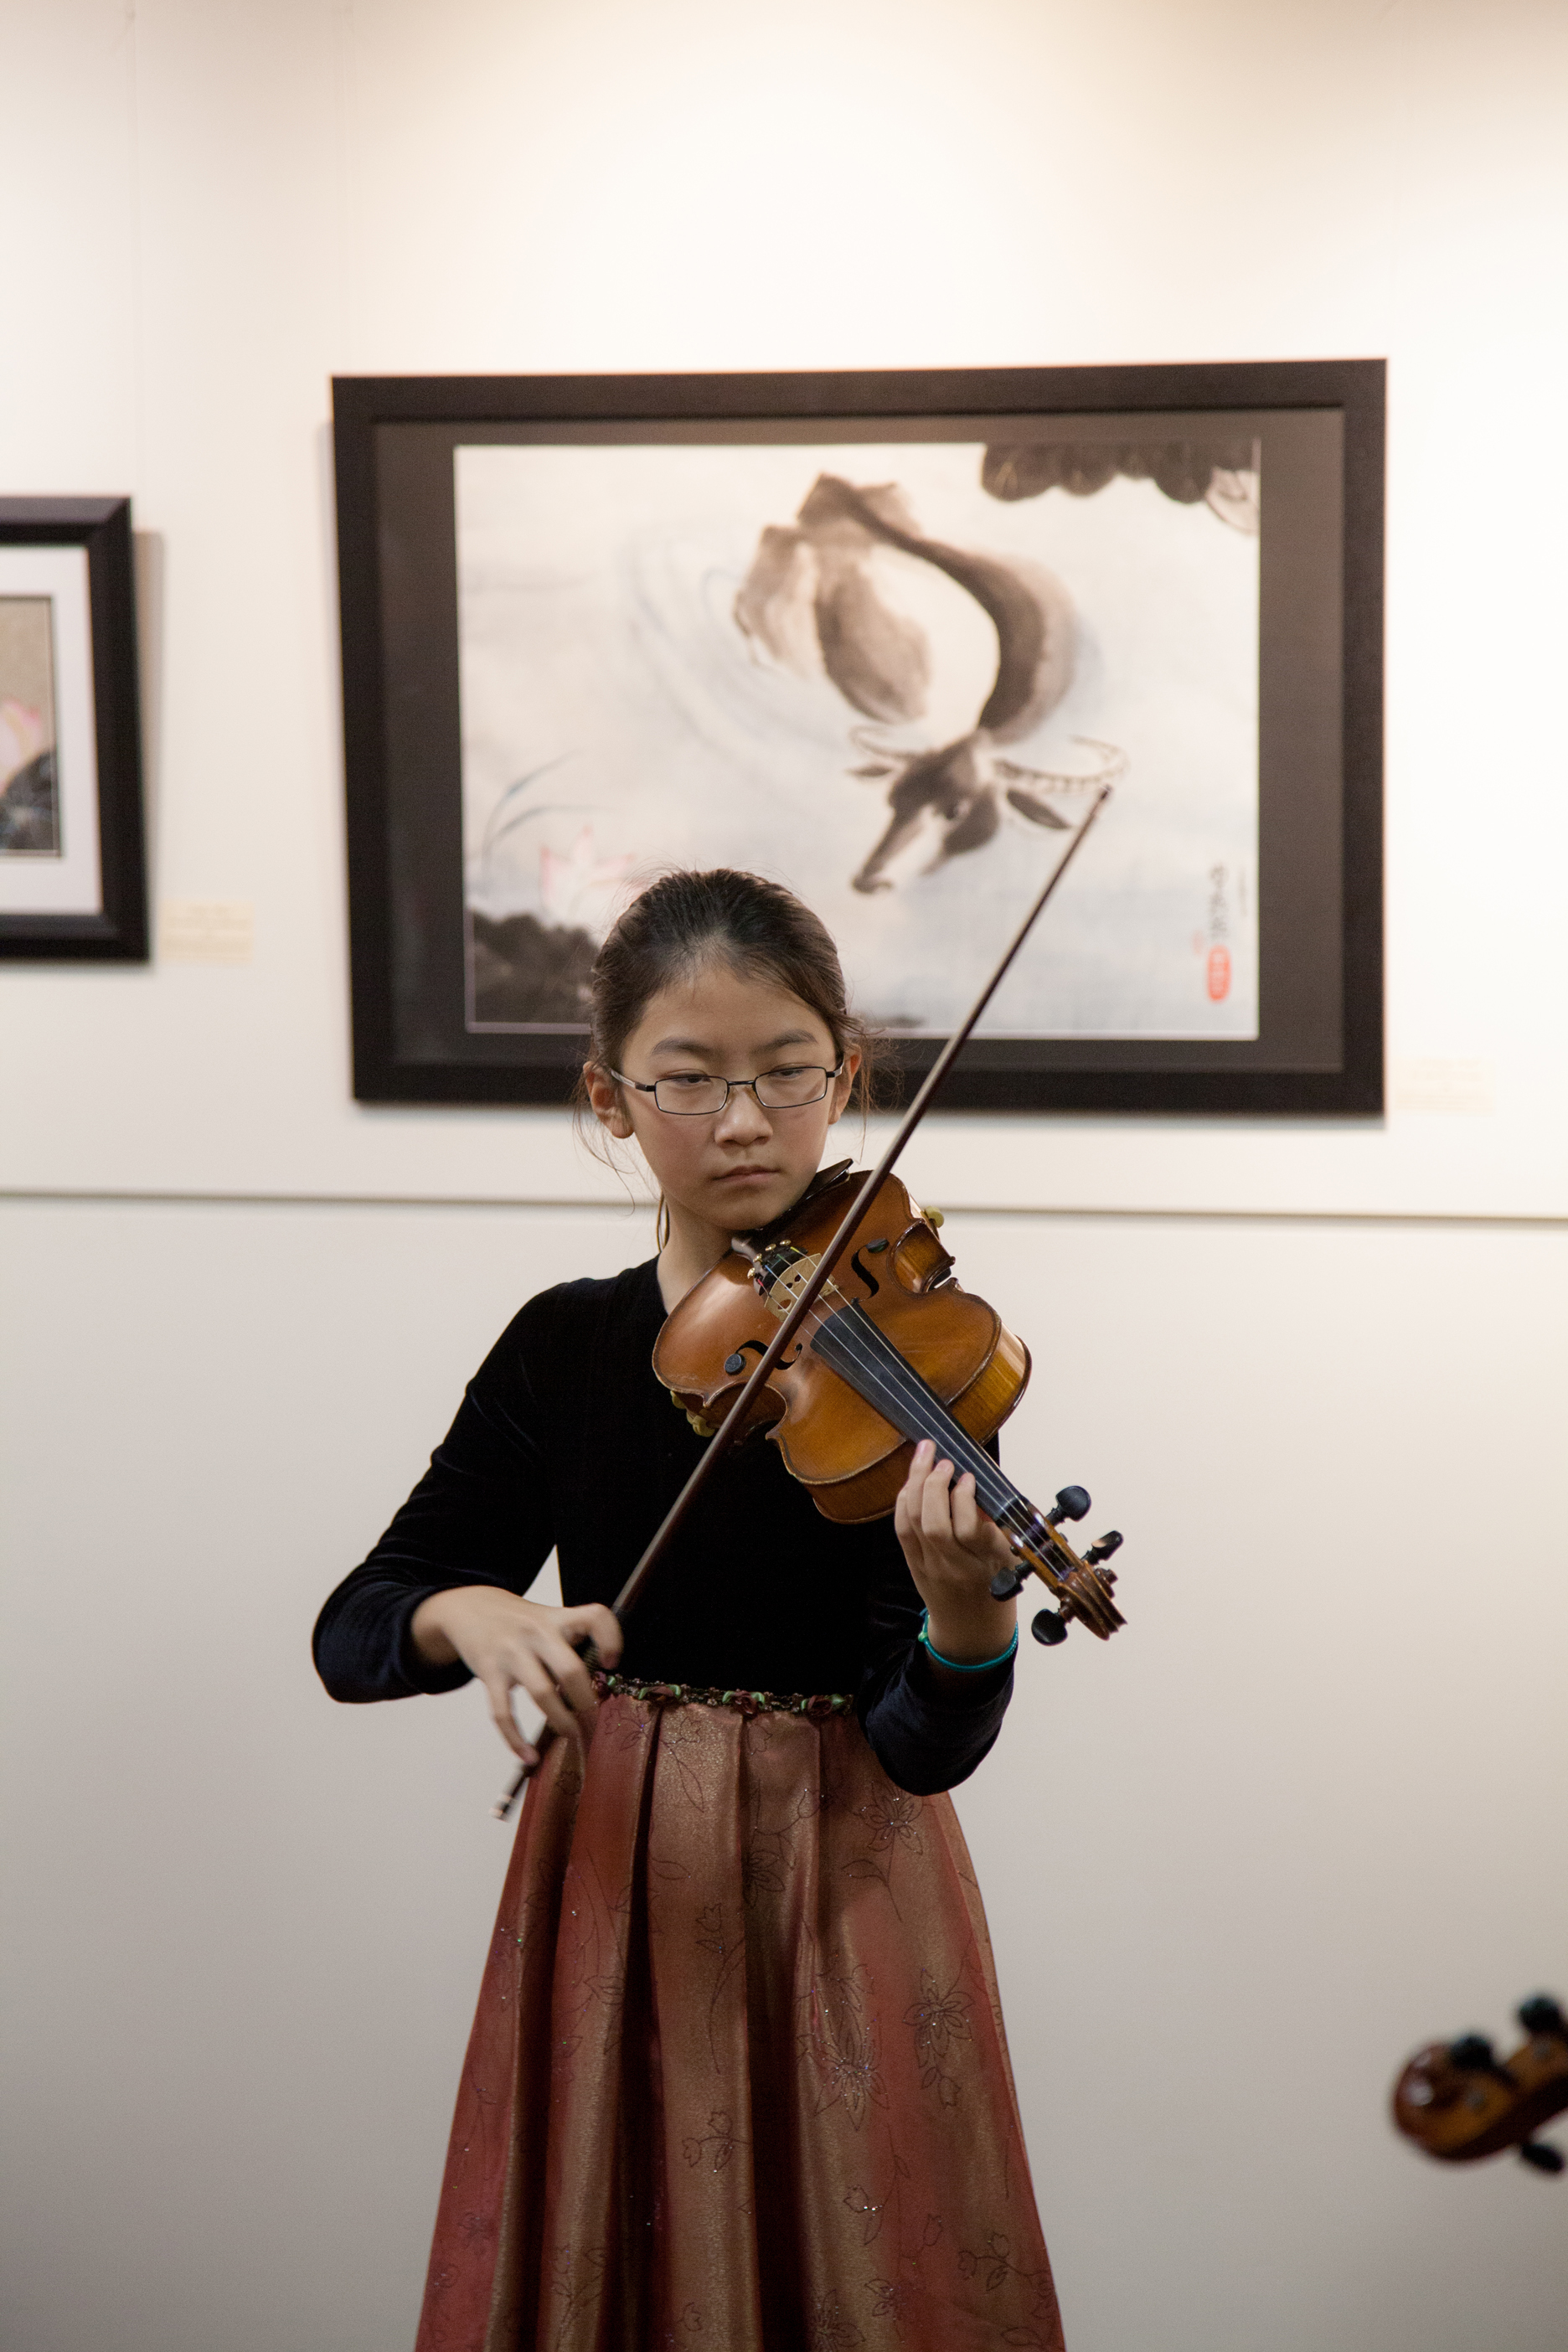 A female playing the violin